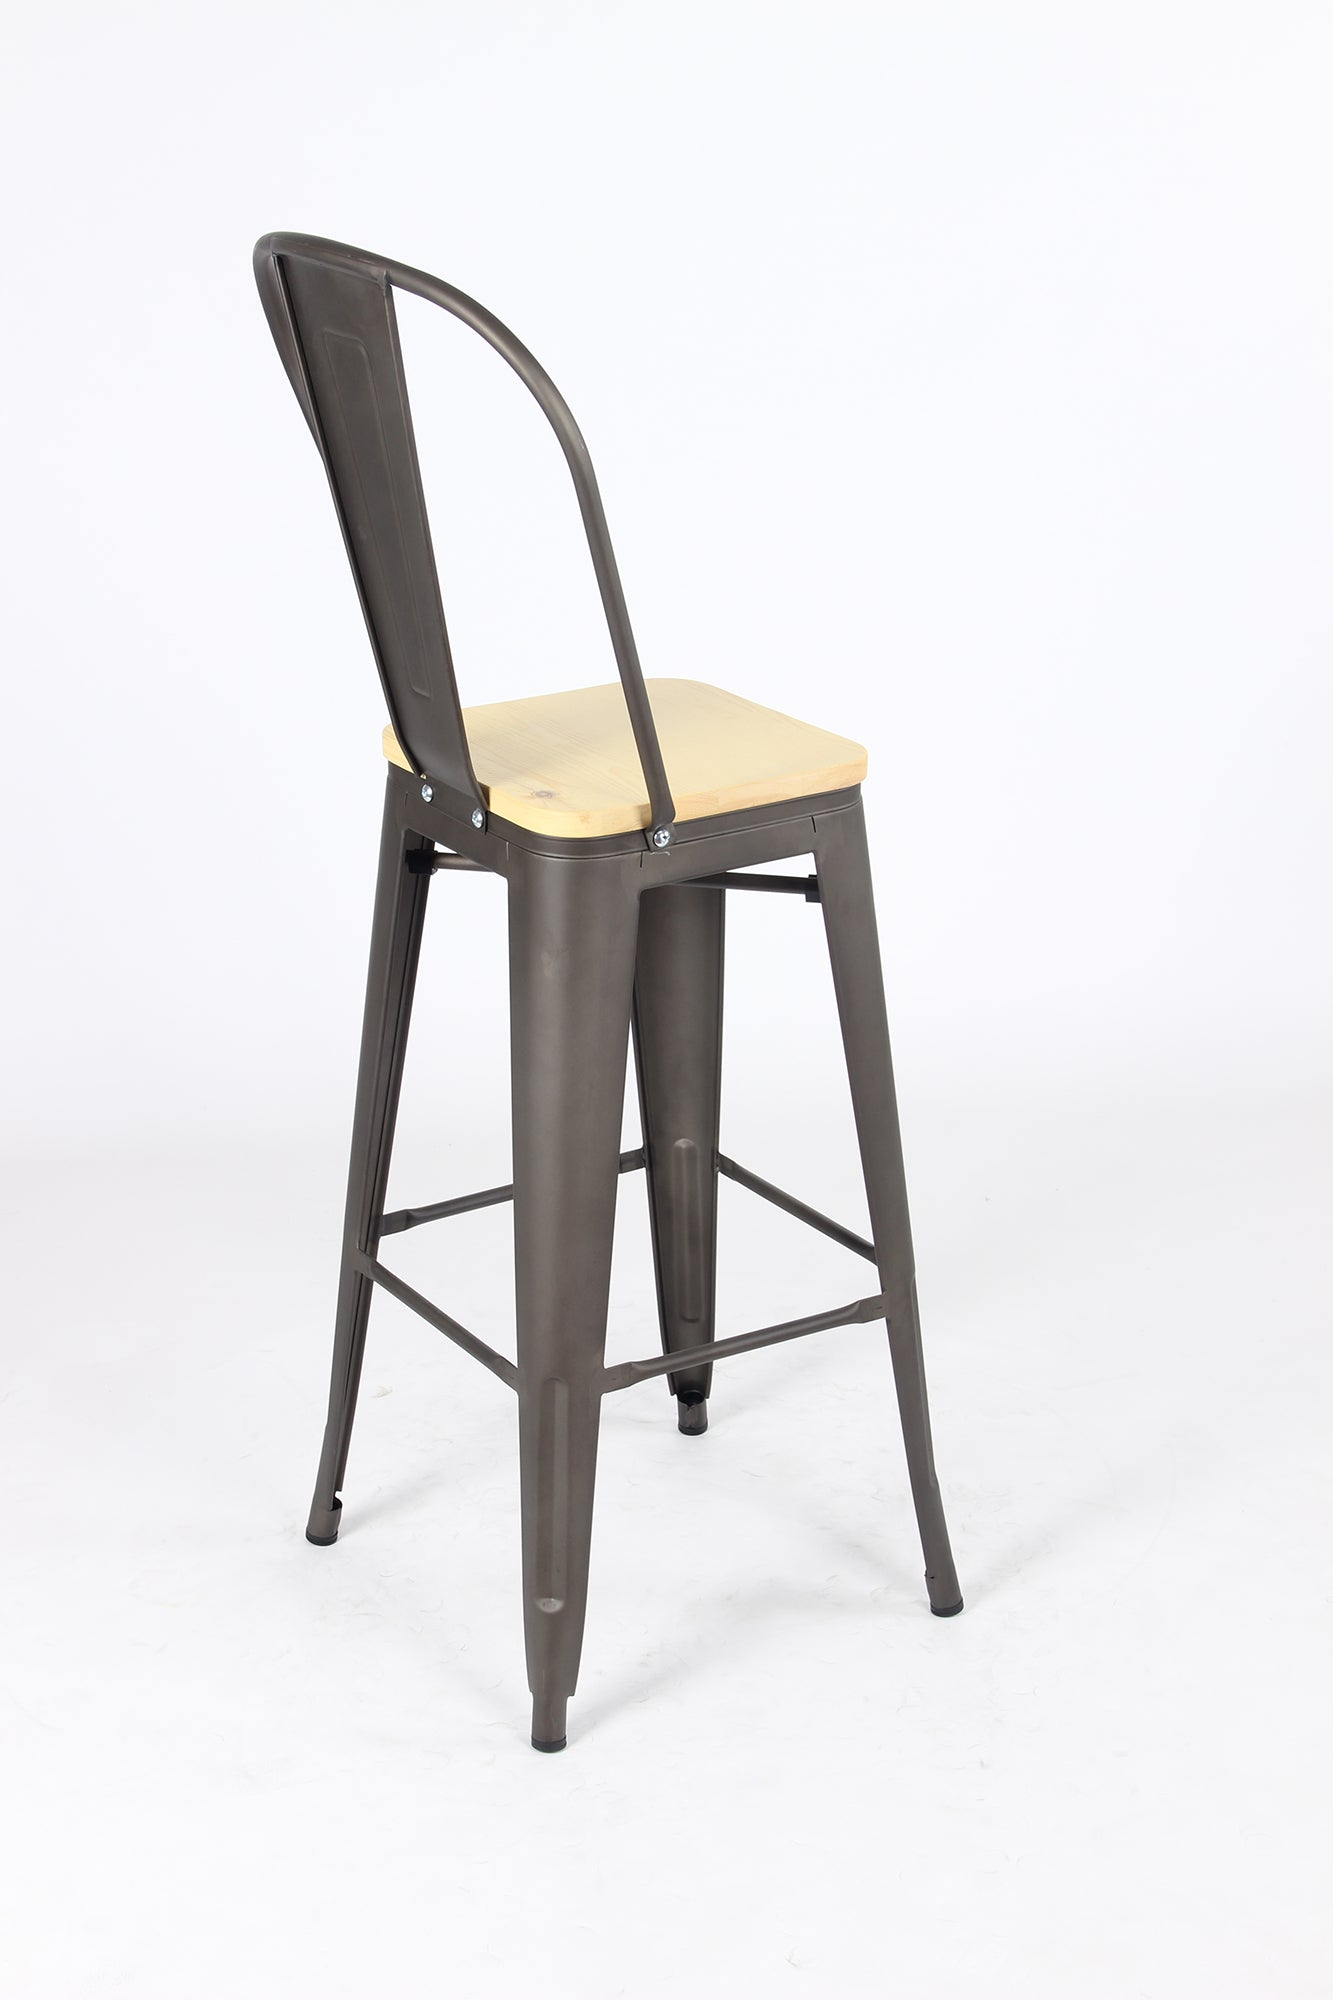 Sgabello Legna Metal Stool - Gunmetal/Wood - BAANJA.CO.UK